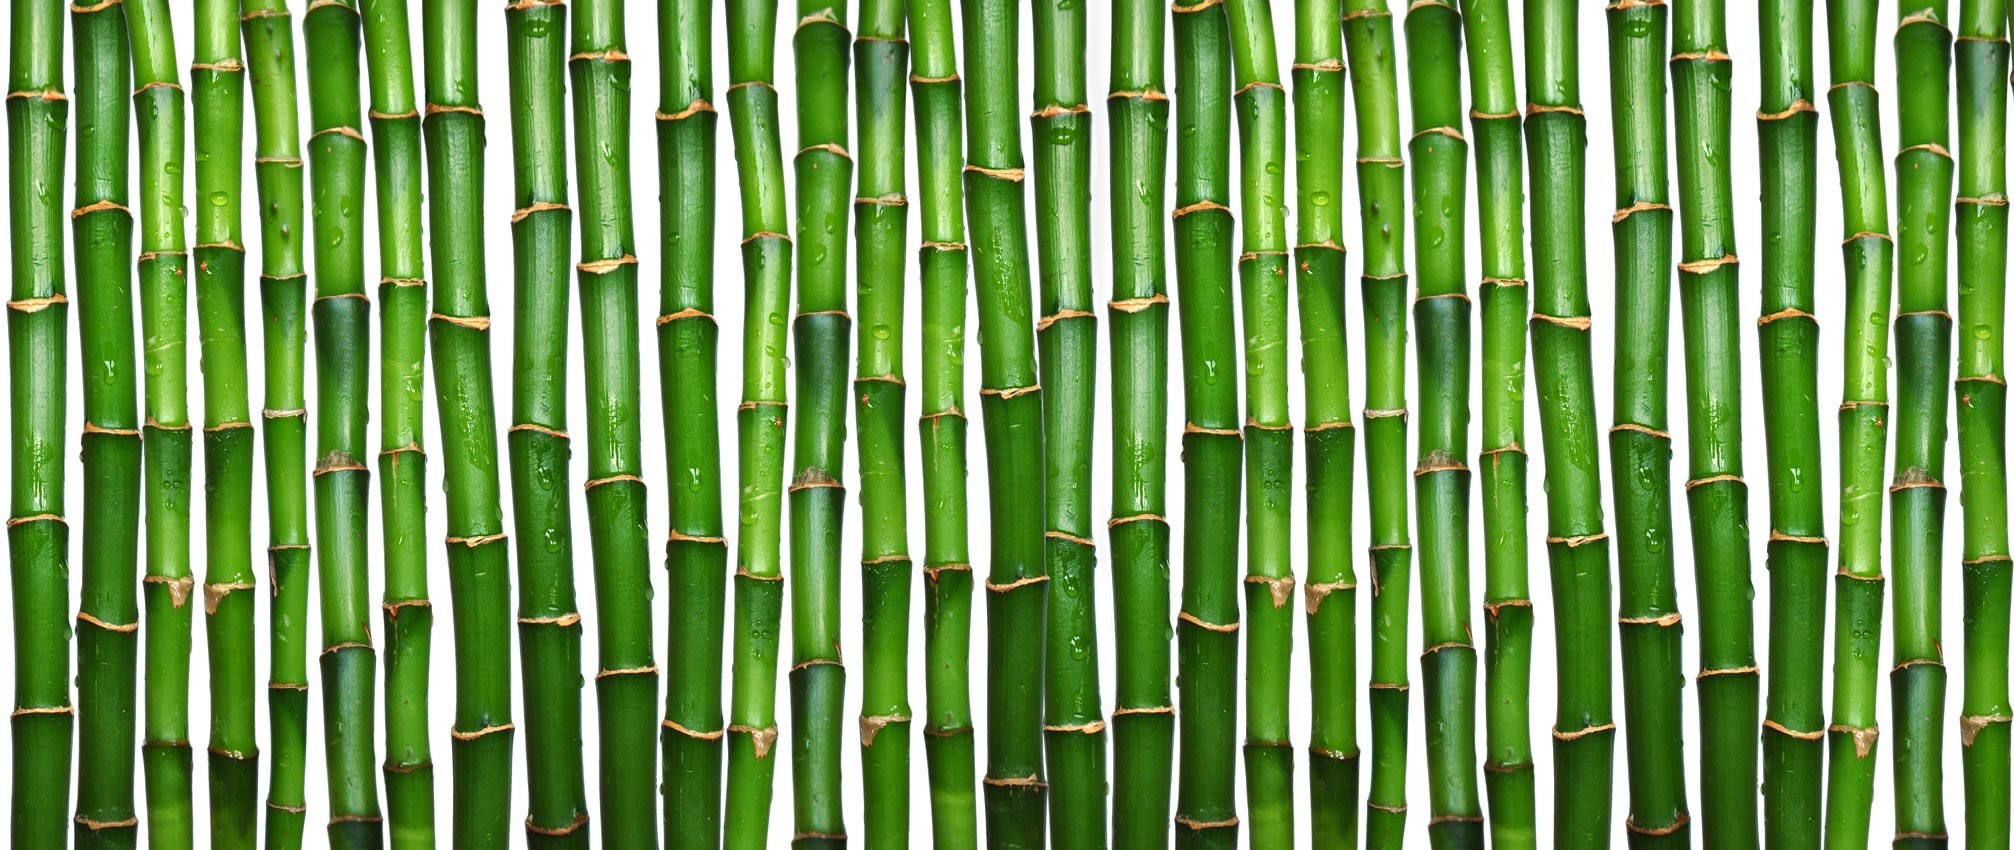 illinois town bans planting bamboo within city limits power plant clipart 3d gas power plant clip art